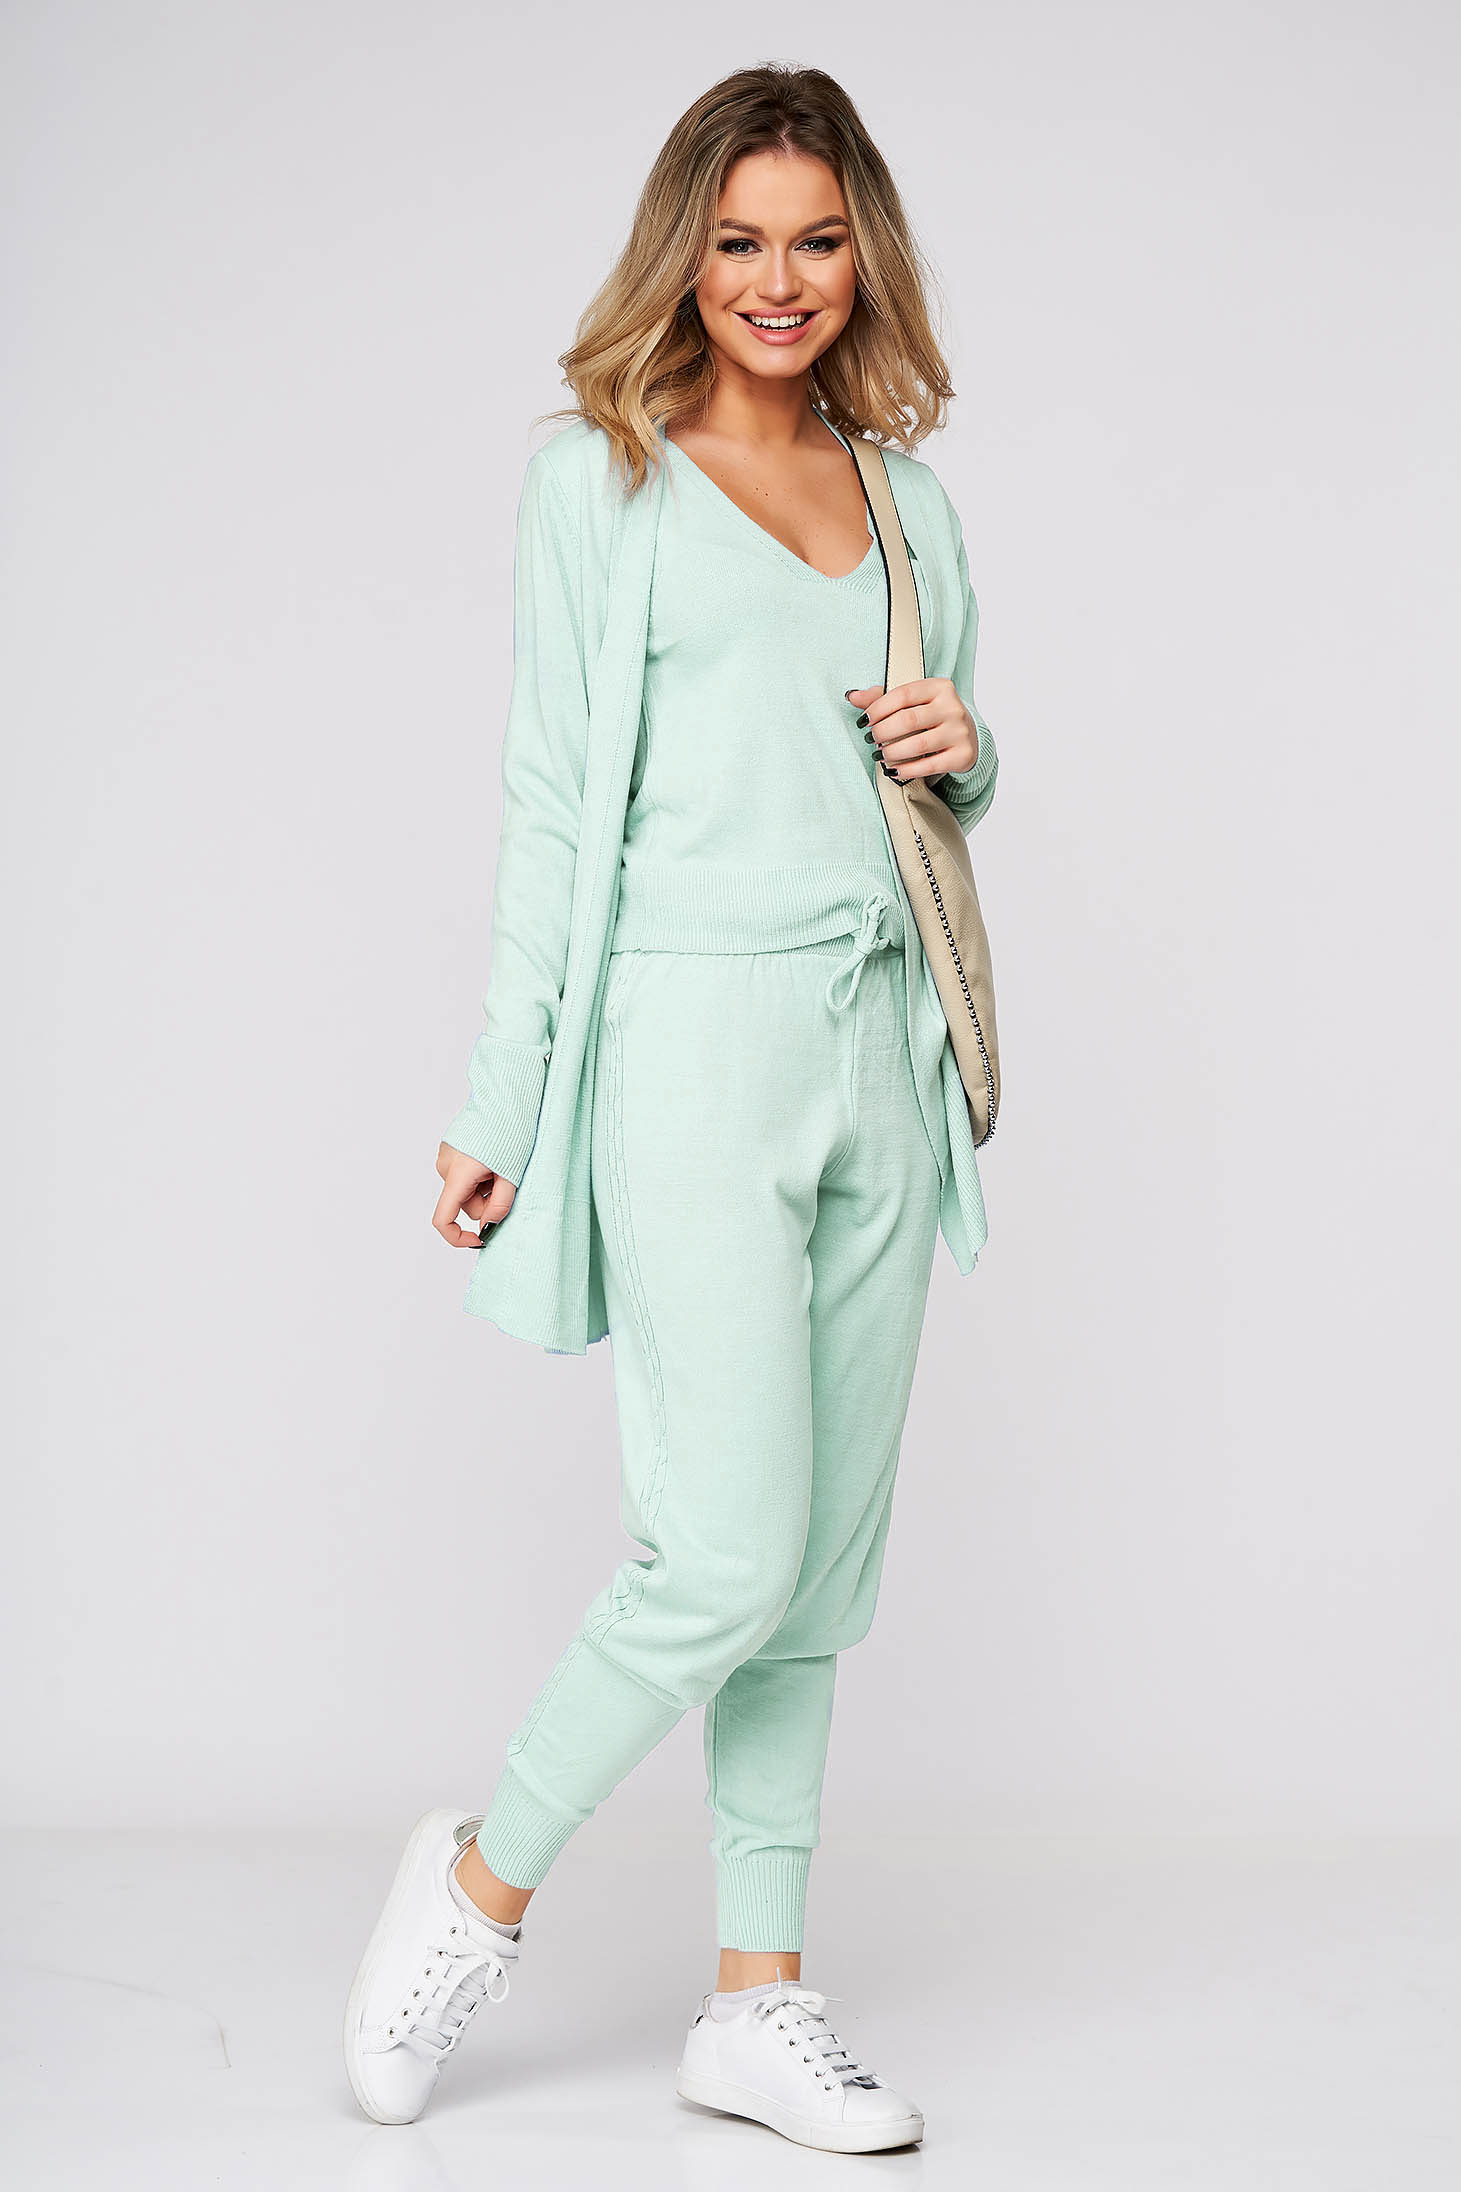 Trening SunShine mint din trei piese casual din material tricotat